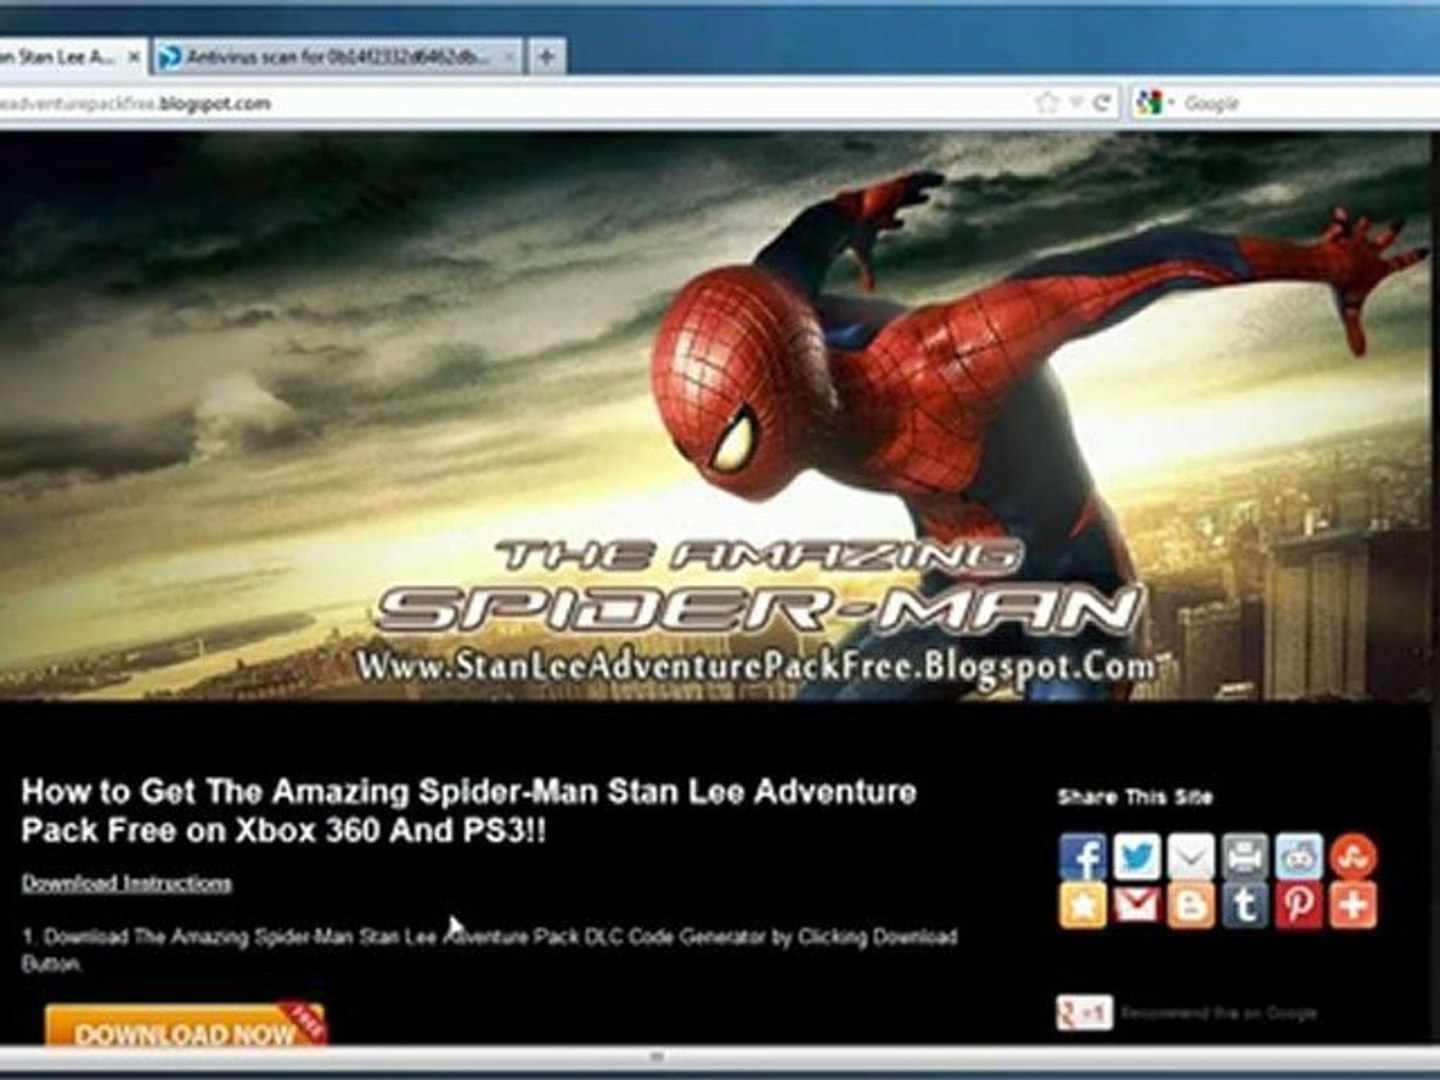 How to Download The Amazing Spider-Man Stan Lee Adventure Pack DLC Free